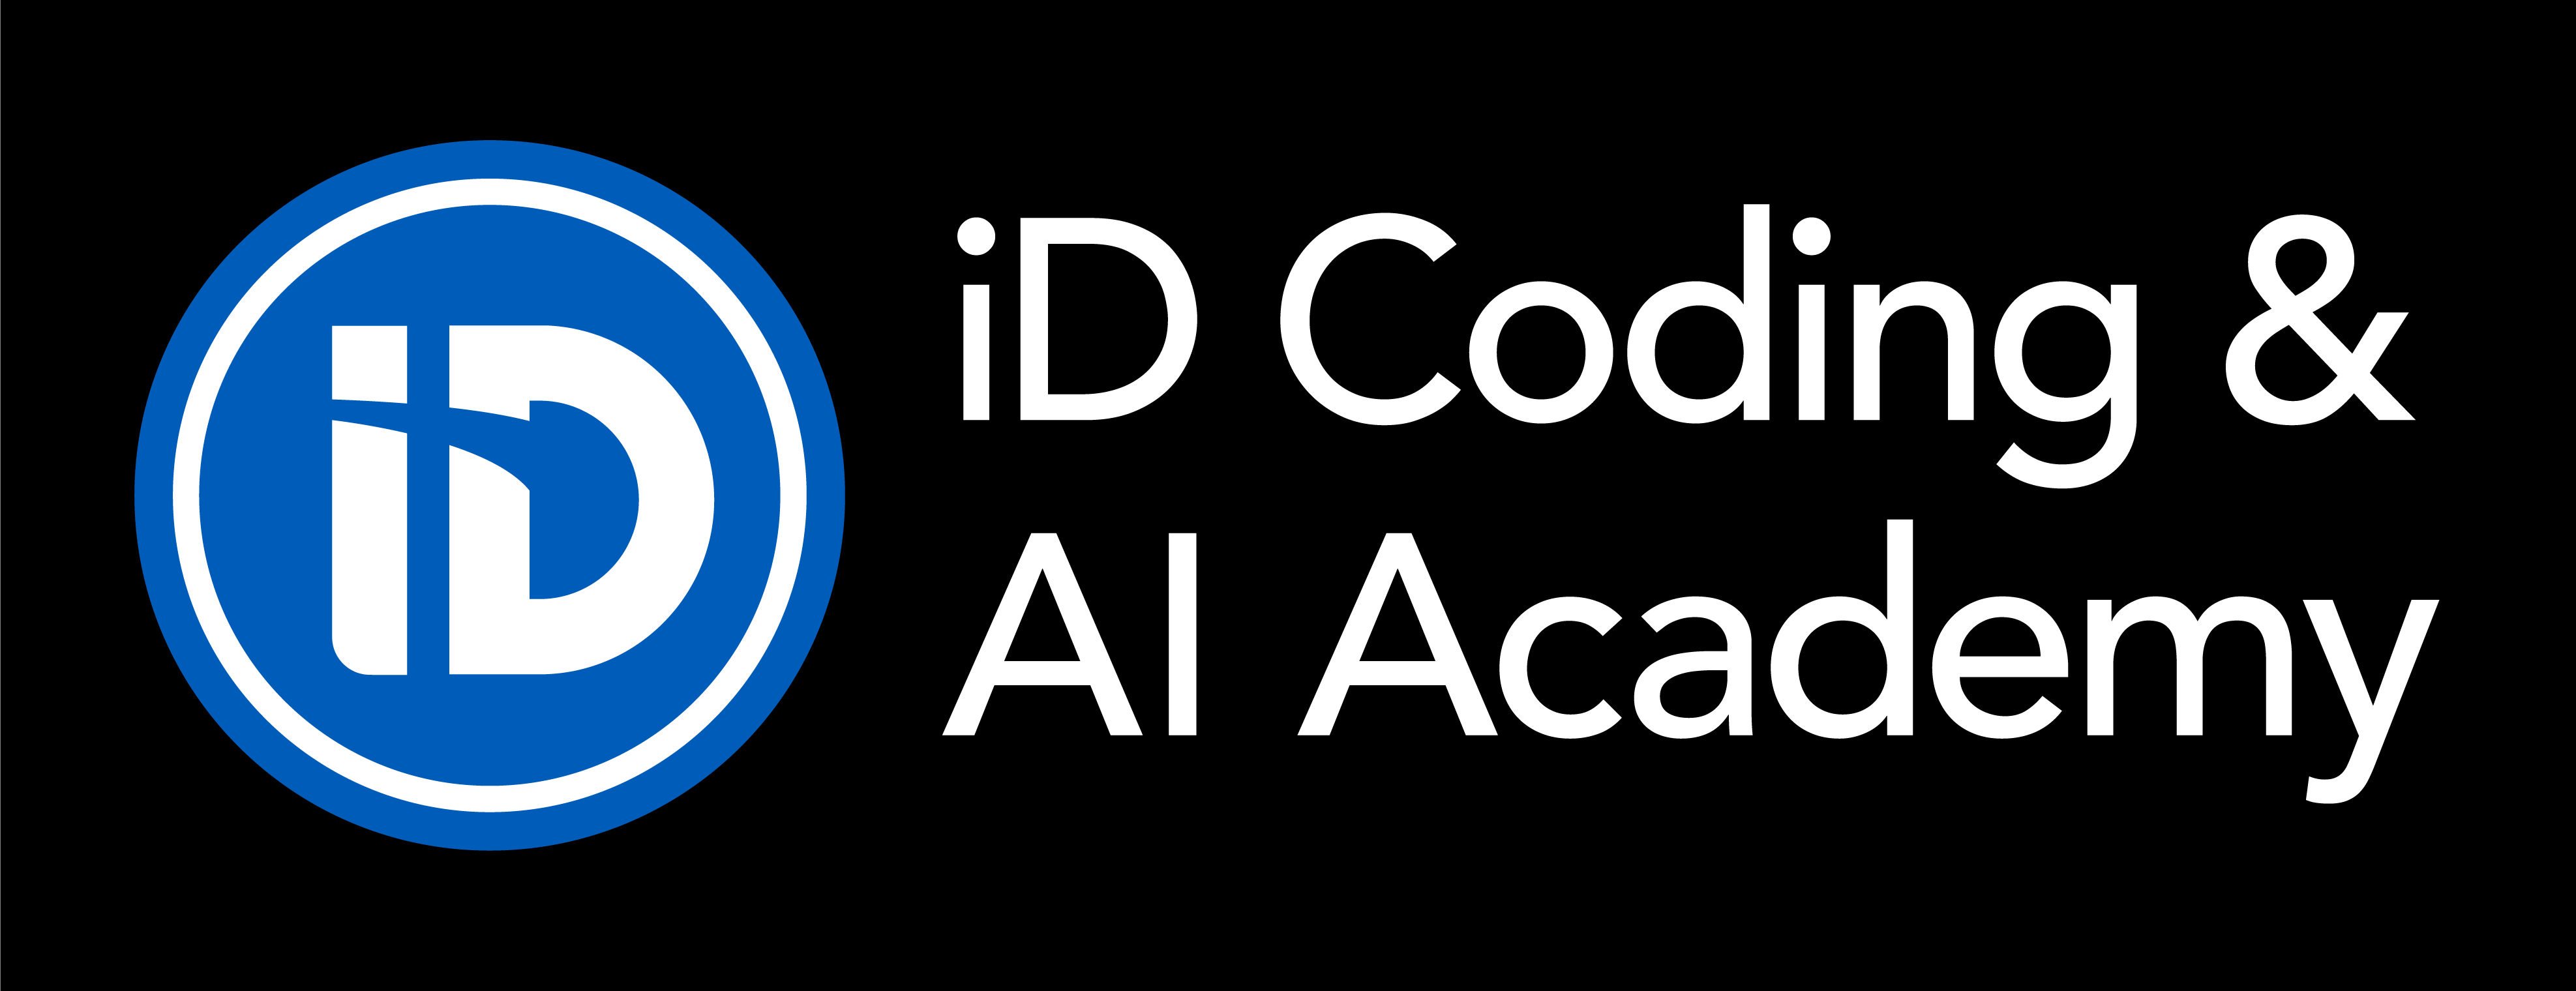 Summer Program iD Coding & AI Academy | Held in the Boston Area